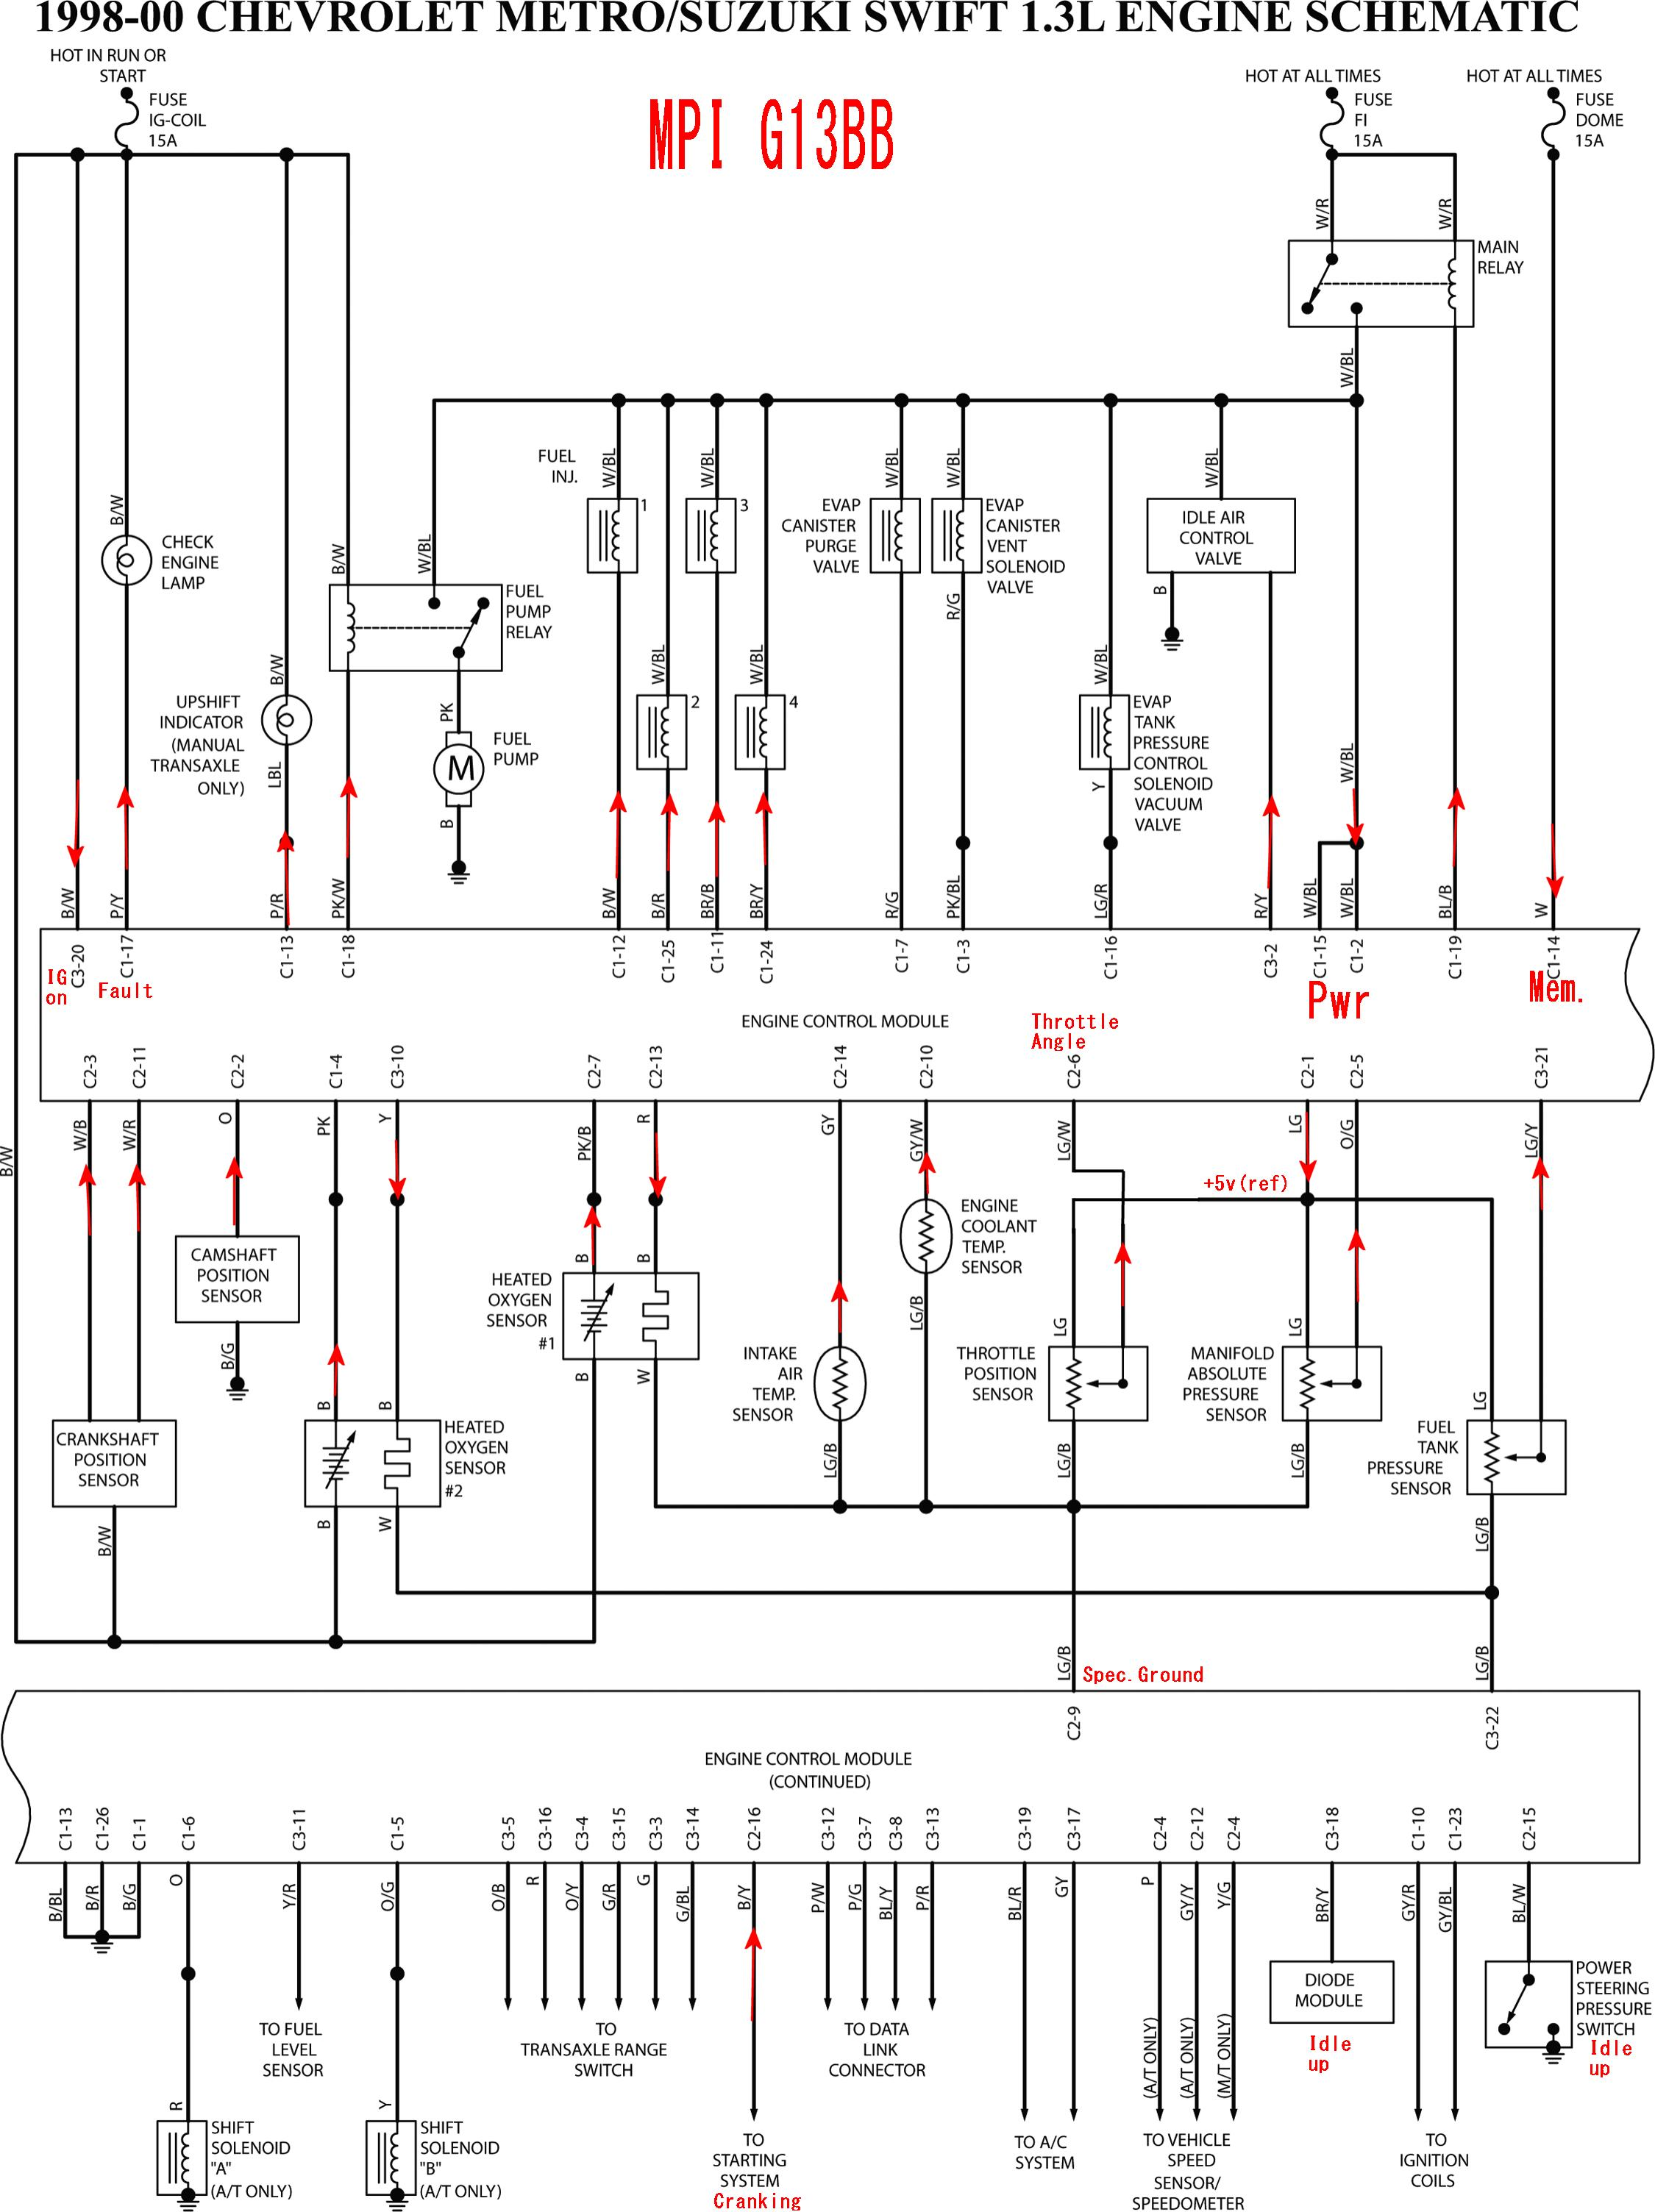 suzuki swift or geo metro, Wiring diagram